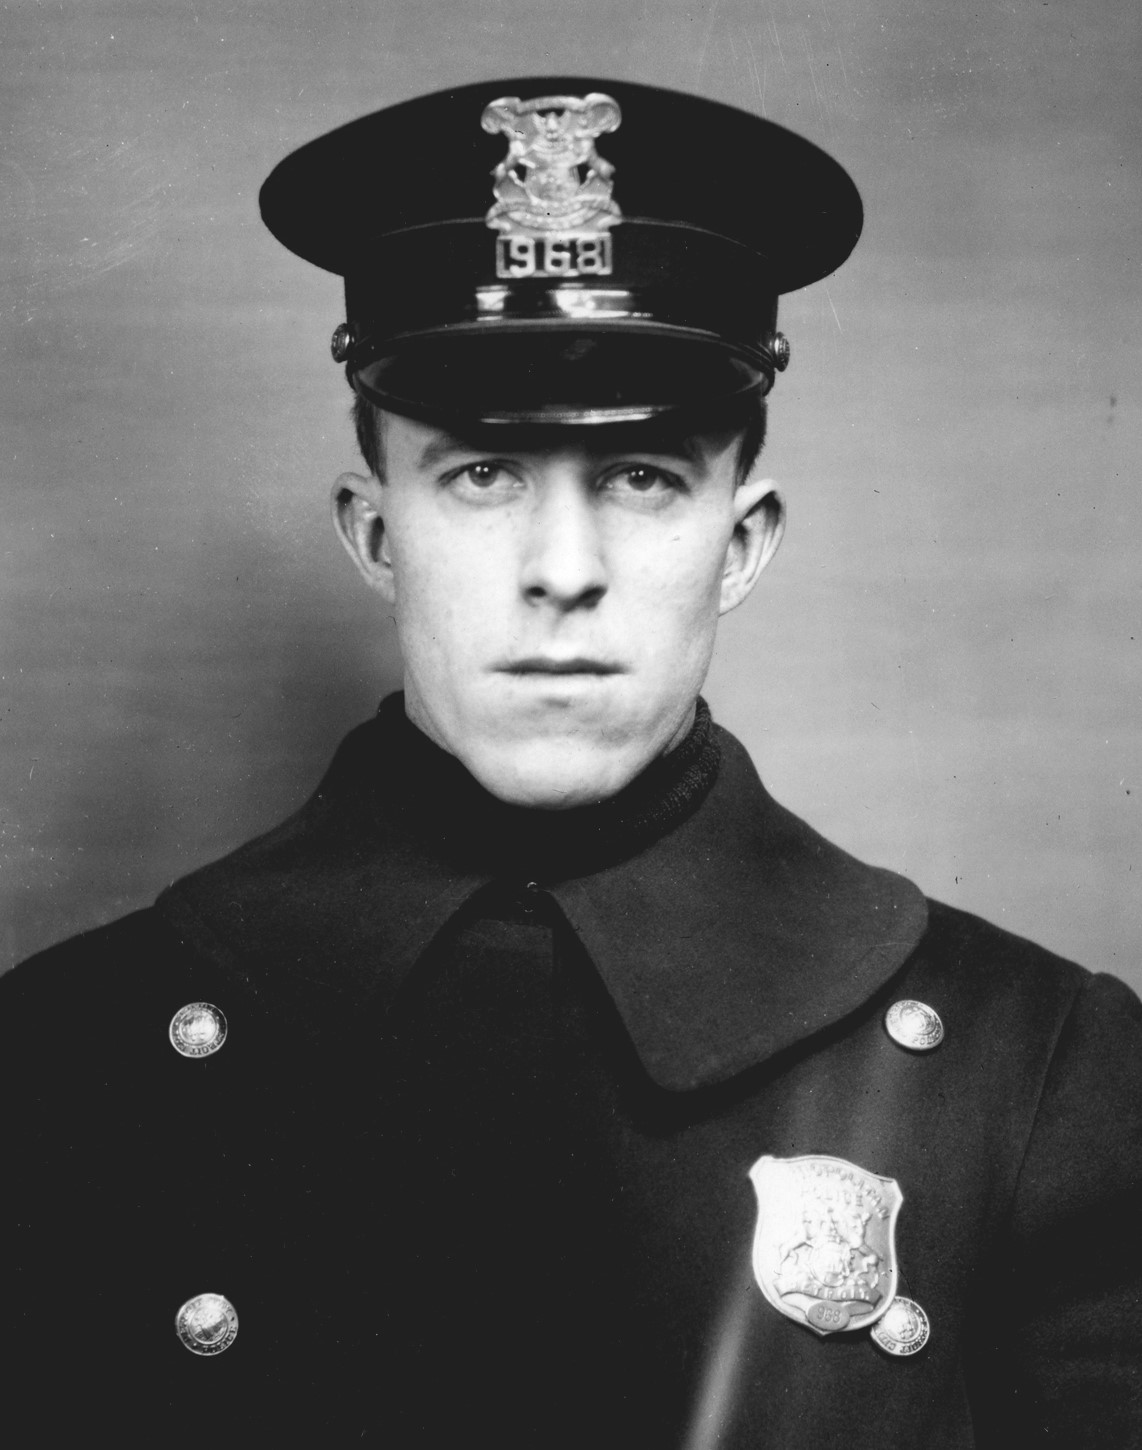 Police Officer Norman F. Towler | Detroit Police Department, Michigan